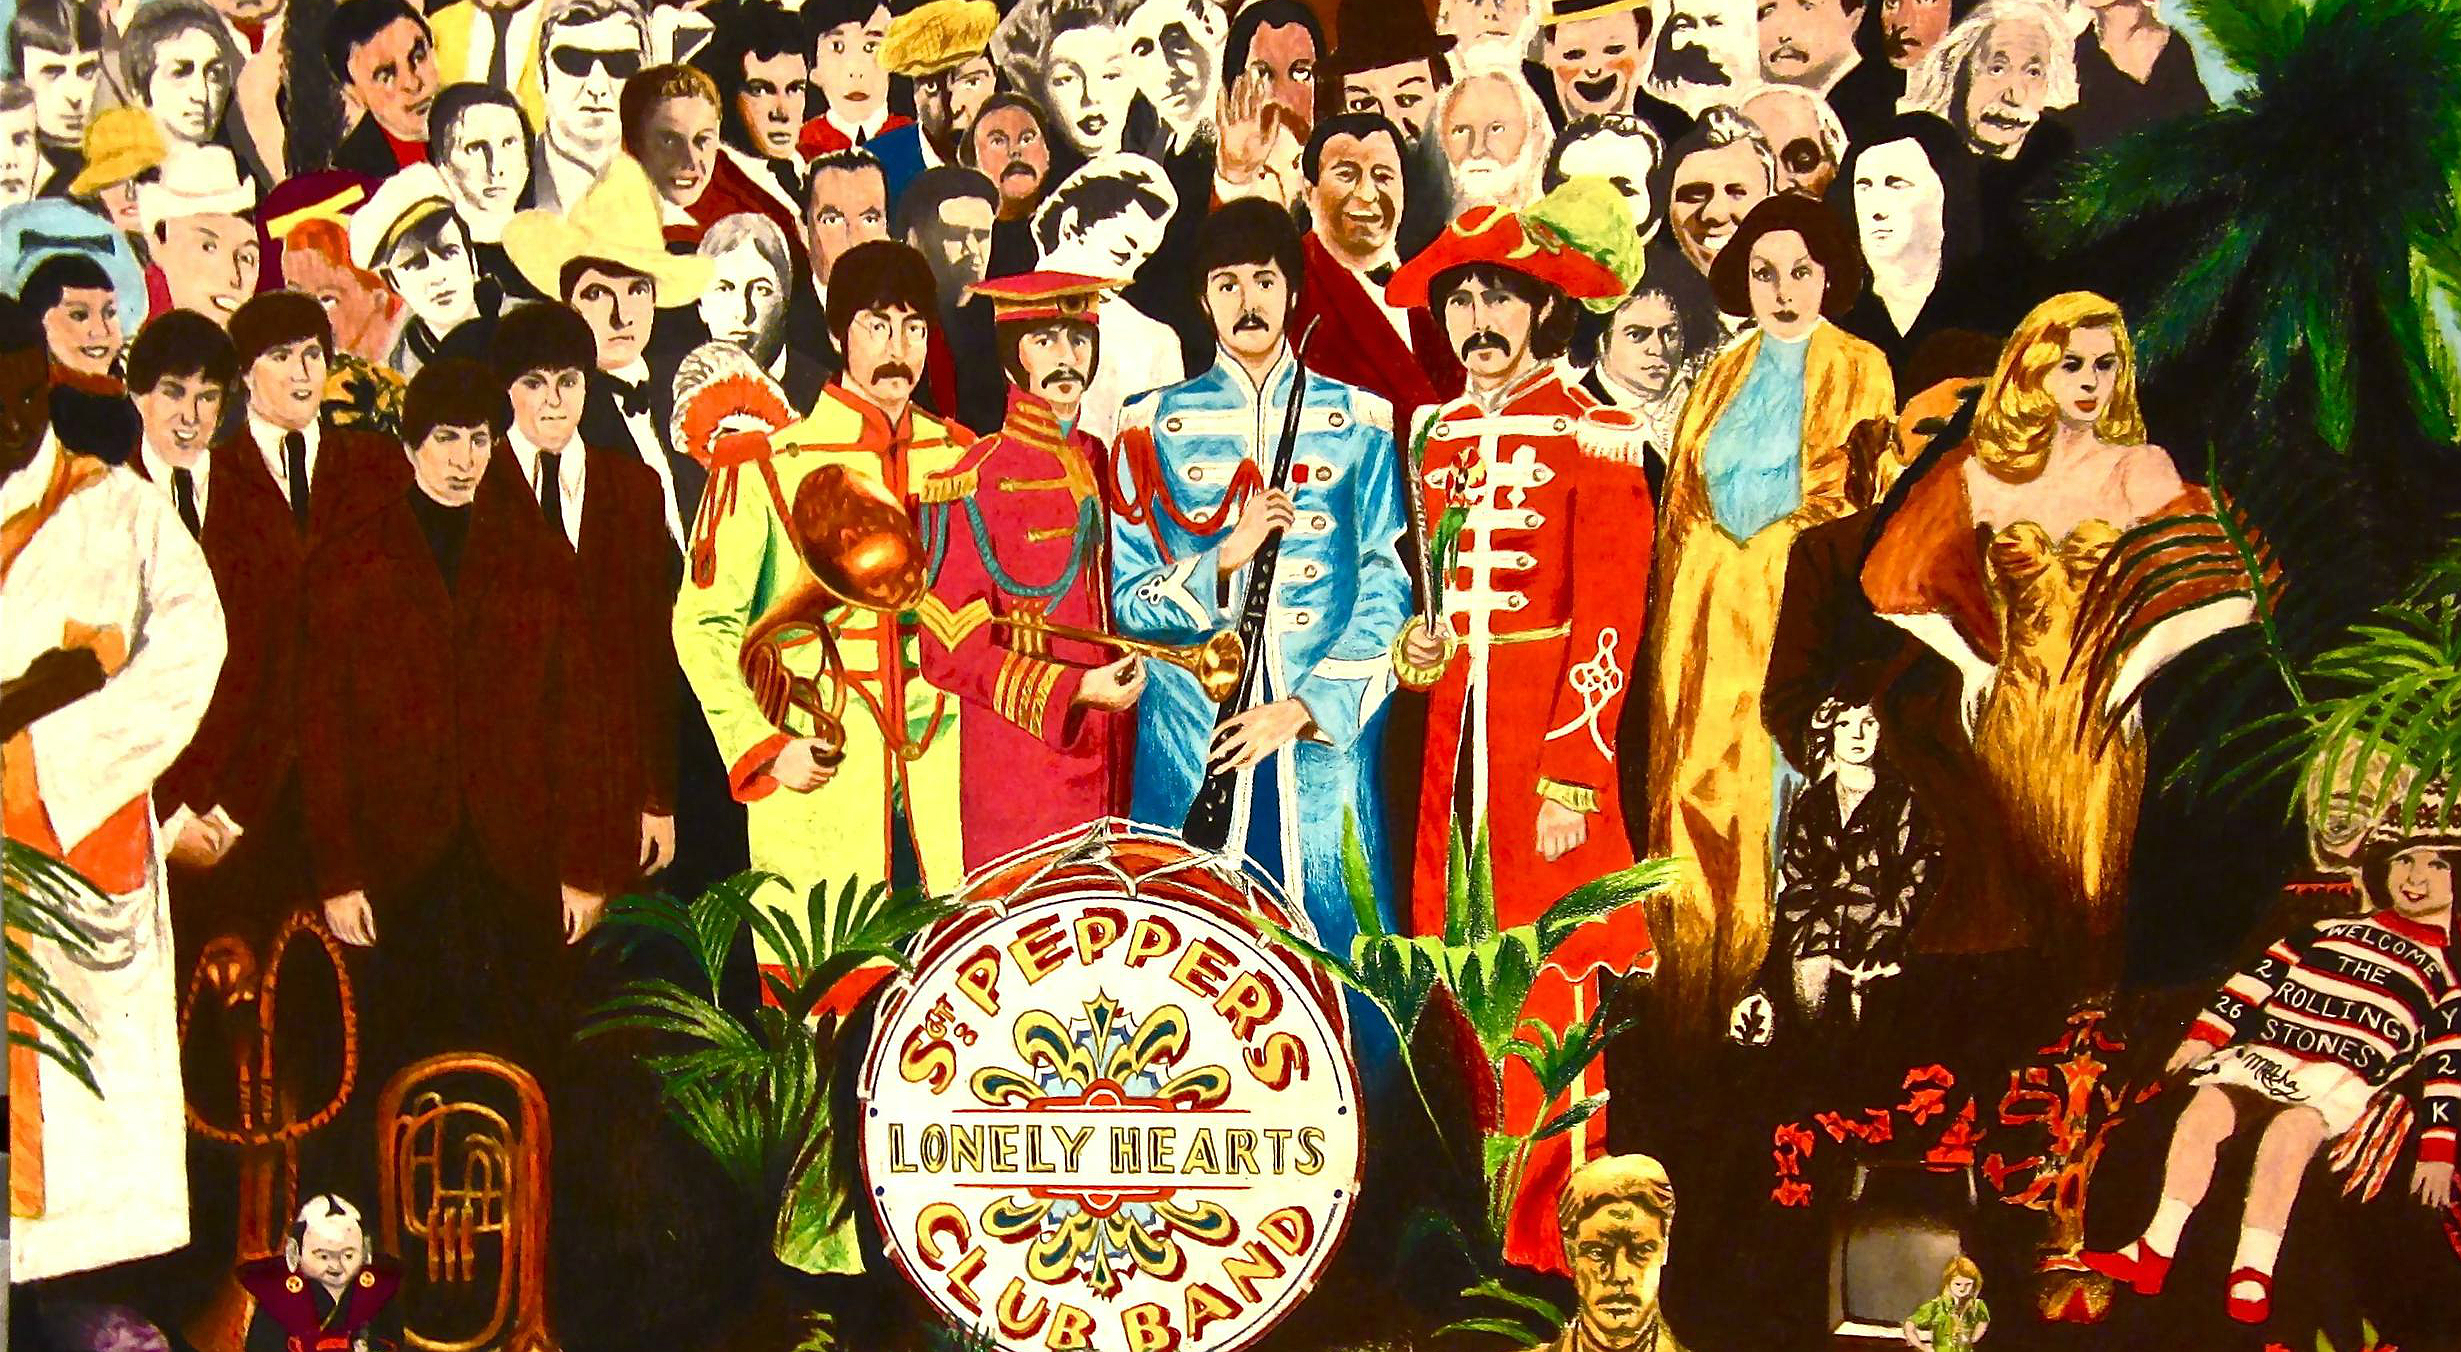 Fragment okładki słynnej płyty The Beatles pt. Sgt. Peppers Lonely Hearts Club Band